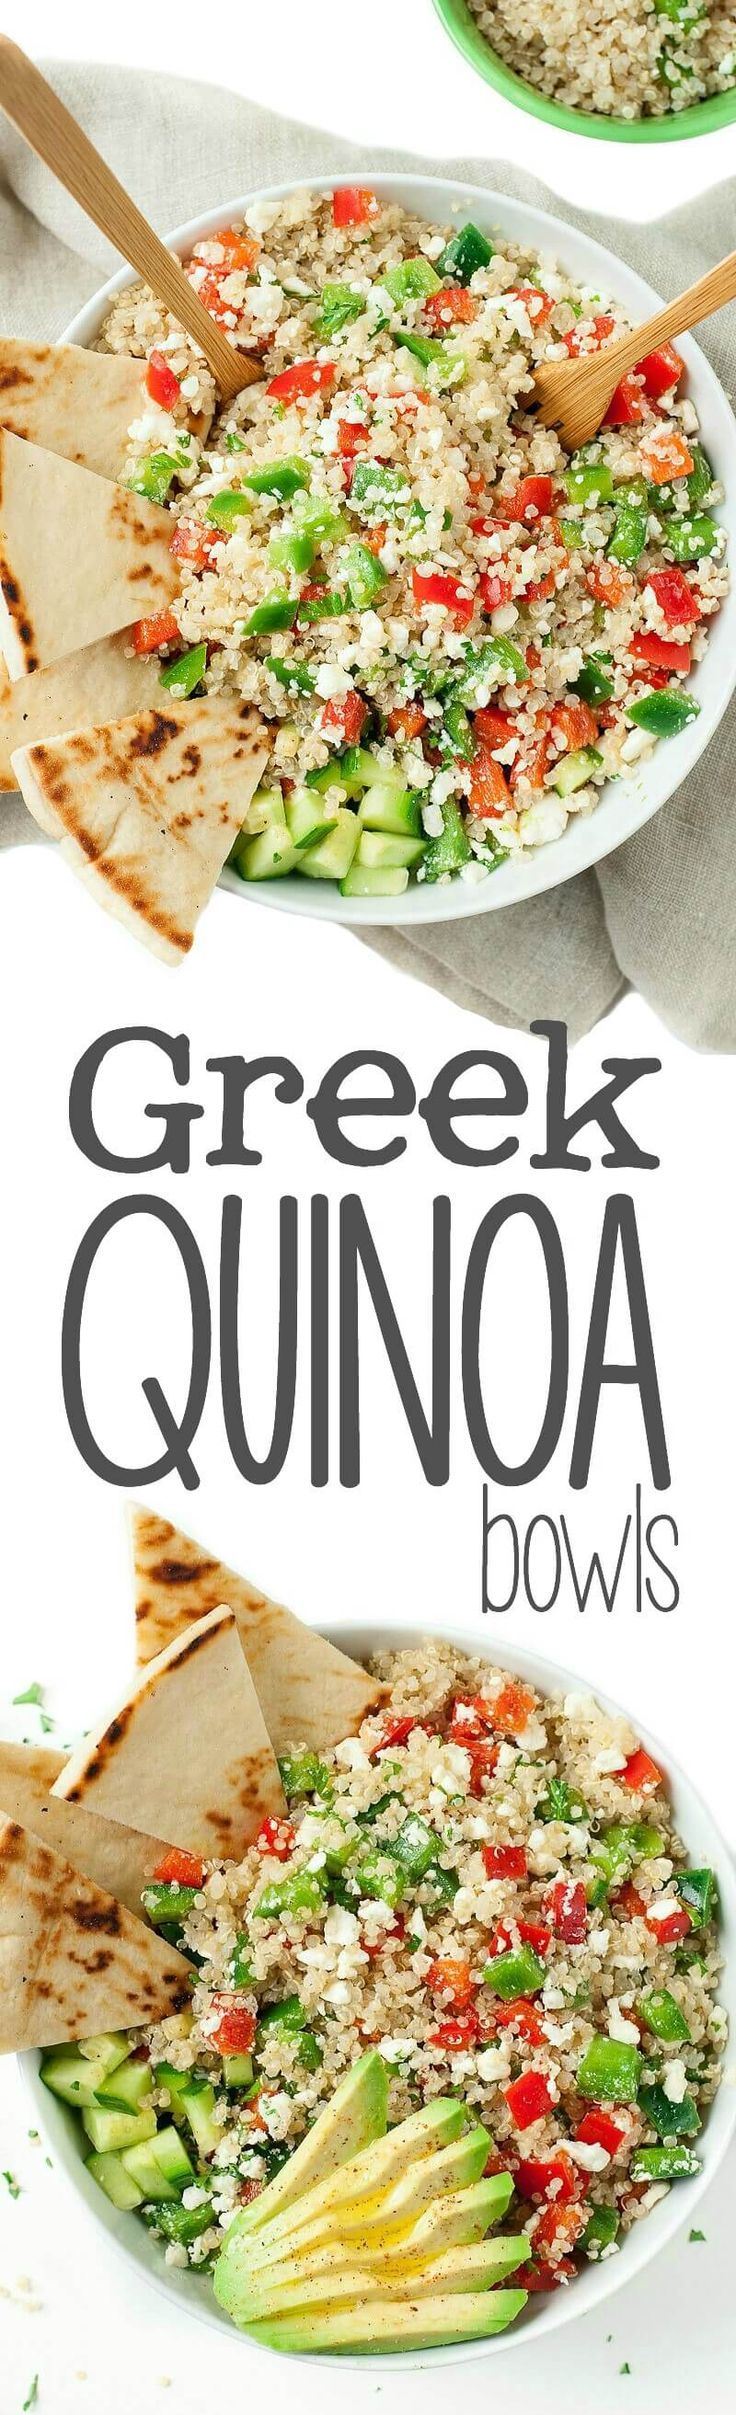 Vegetarian Greek Quinoa Bowl